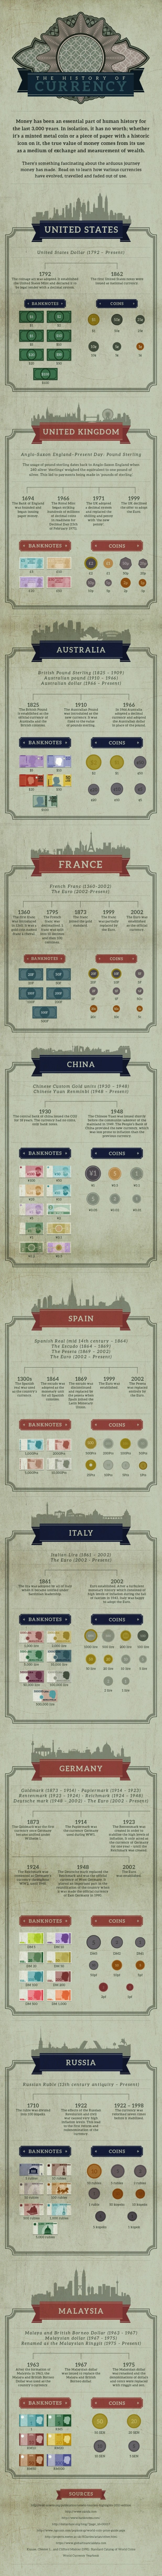 The History of Currency in 10 Different Countries